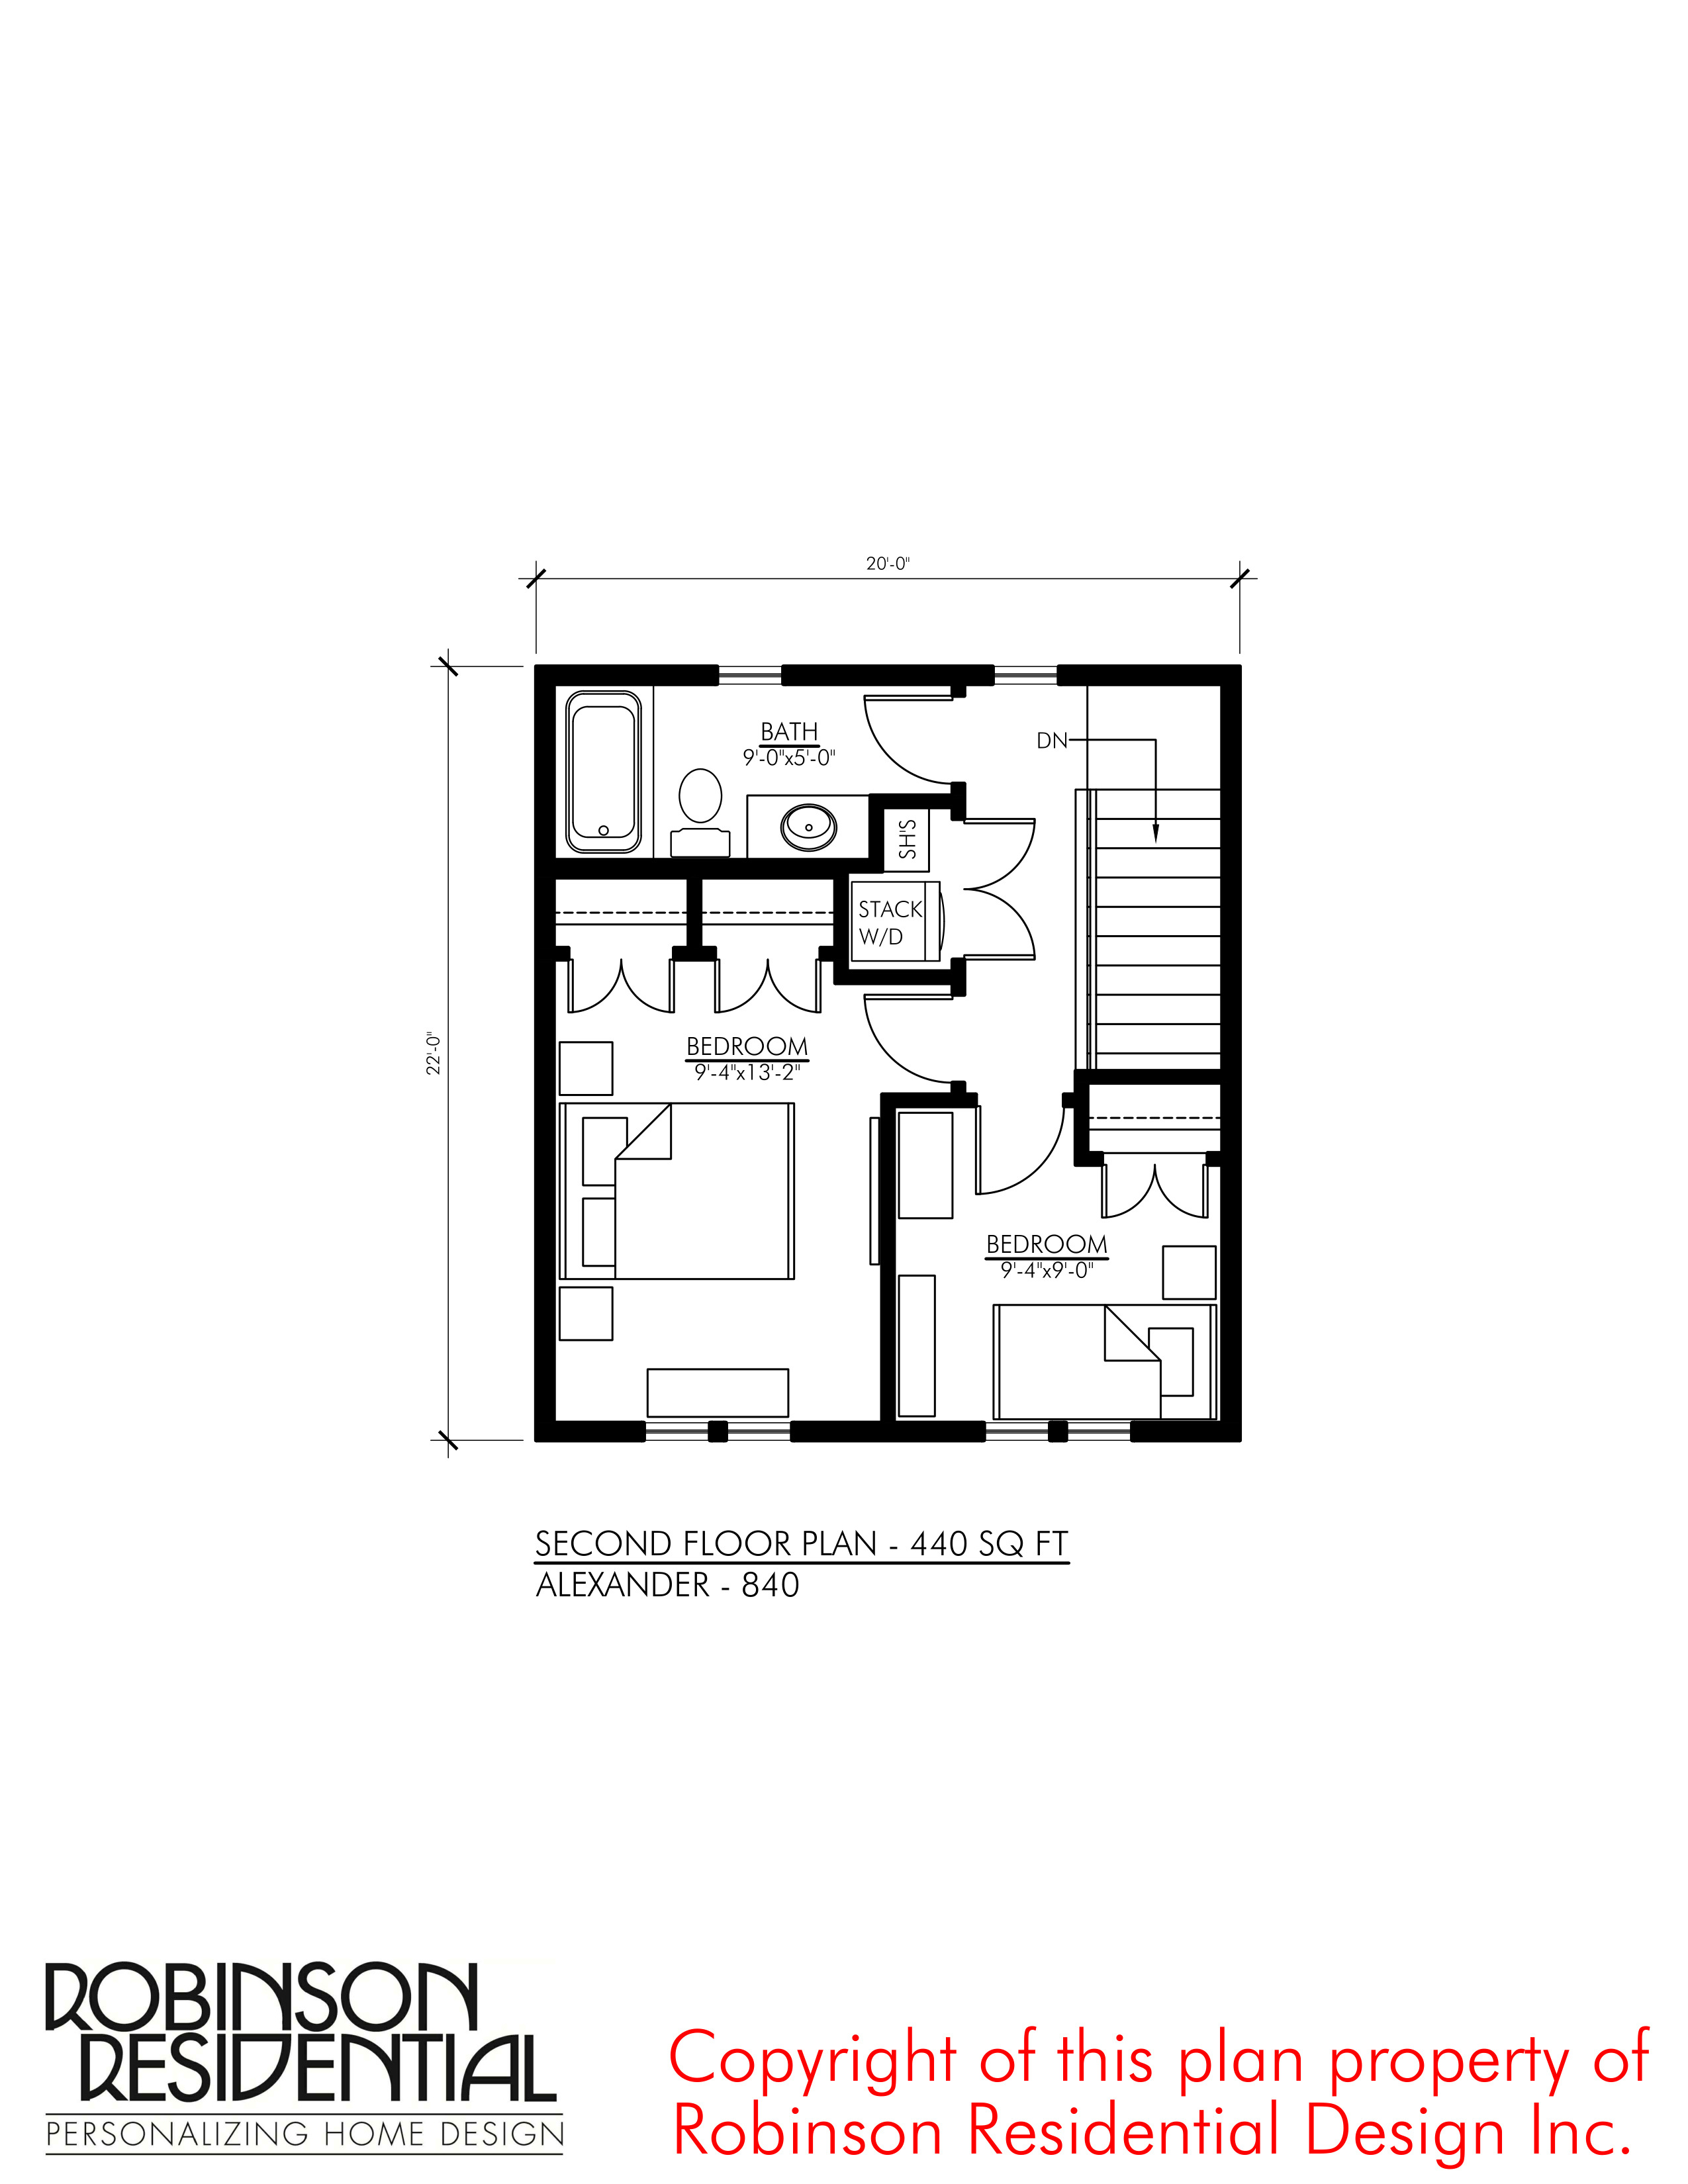 SMALL HOUSE PLANS ALEXANDER 840 02 SECOND FLOOR PLAN